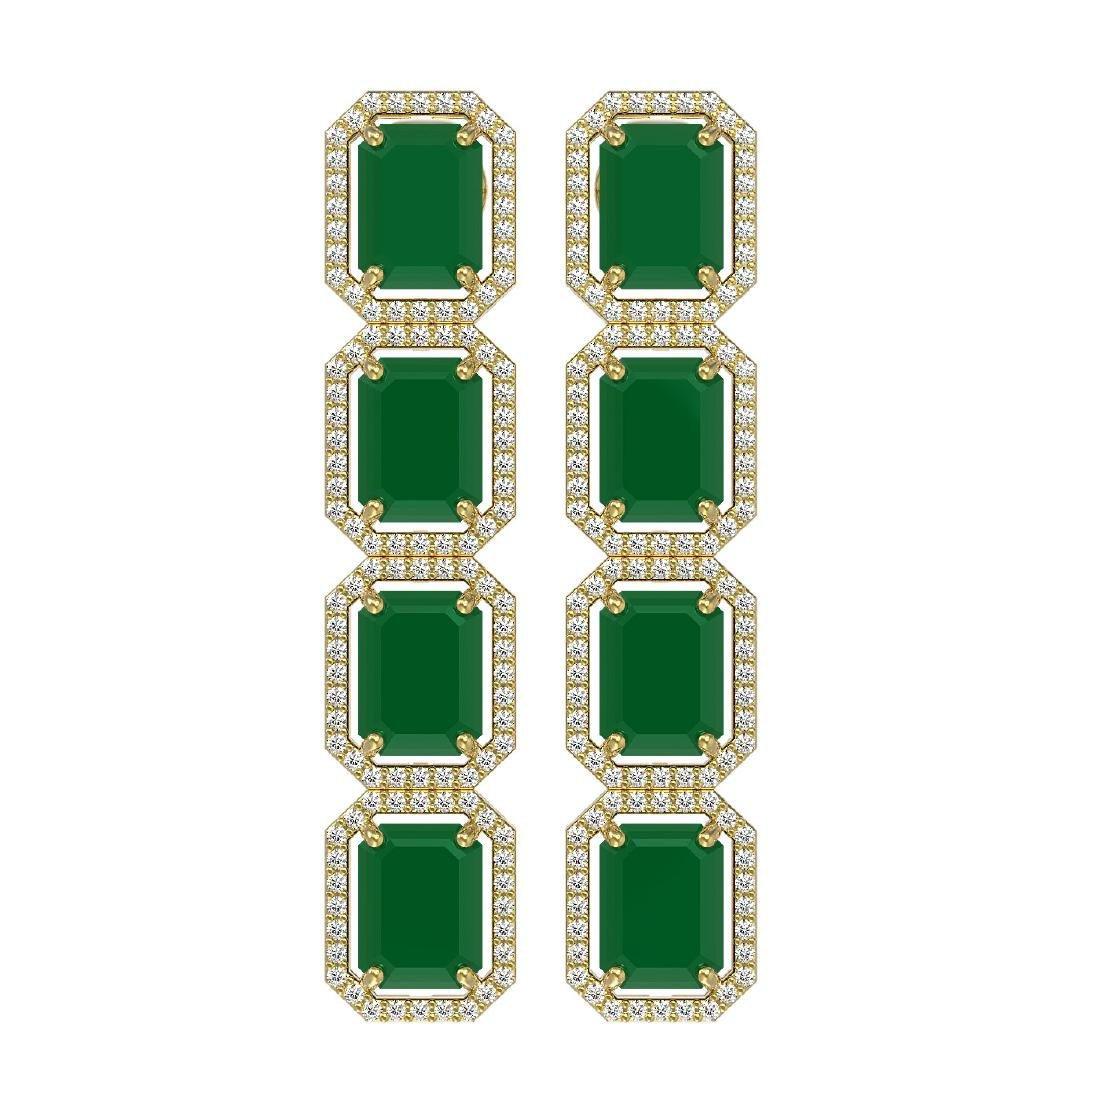 20.59 CTW Emerald & Diamond Halo Earrings 10K Yellow